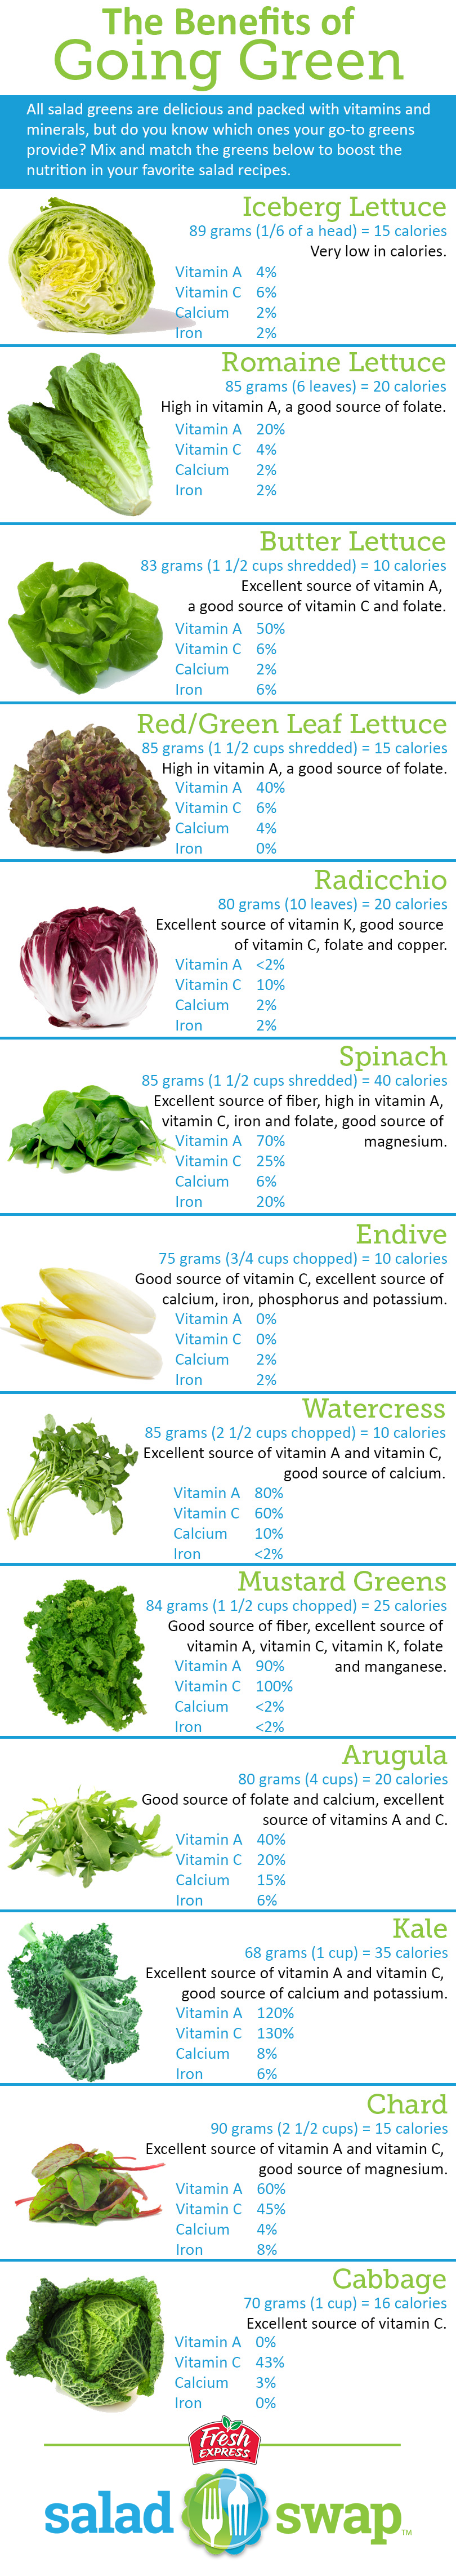 The Benefits Of Green Salad Leaves Mix And Match For Optimum Nutrition Nutrition Healthy Health And Nutrition